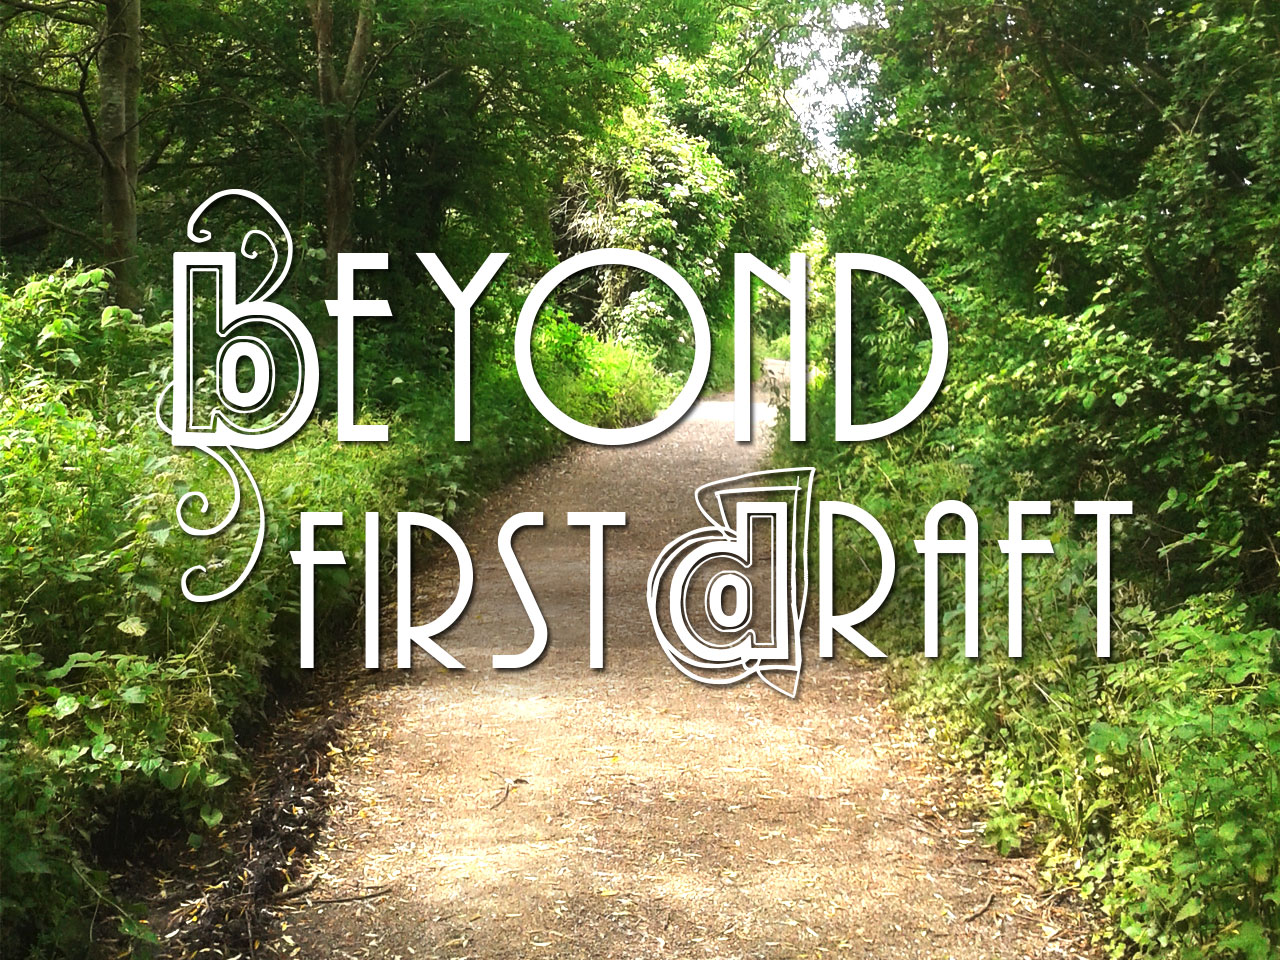 The Beyond First Draft writing workshop